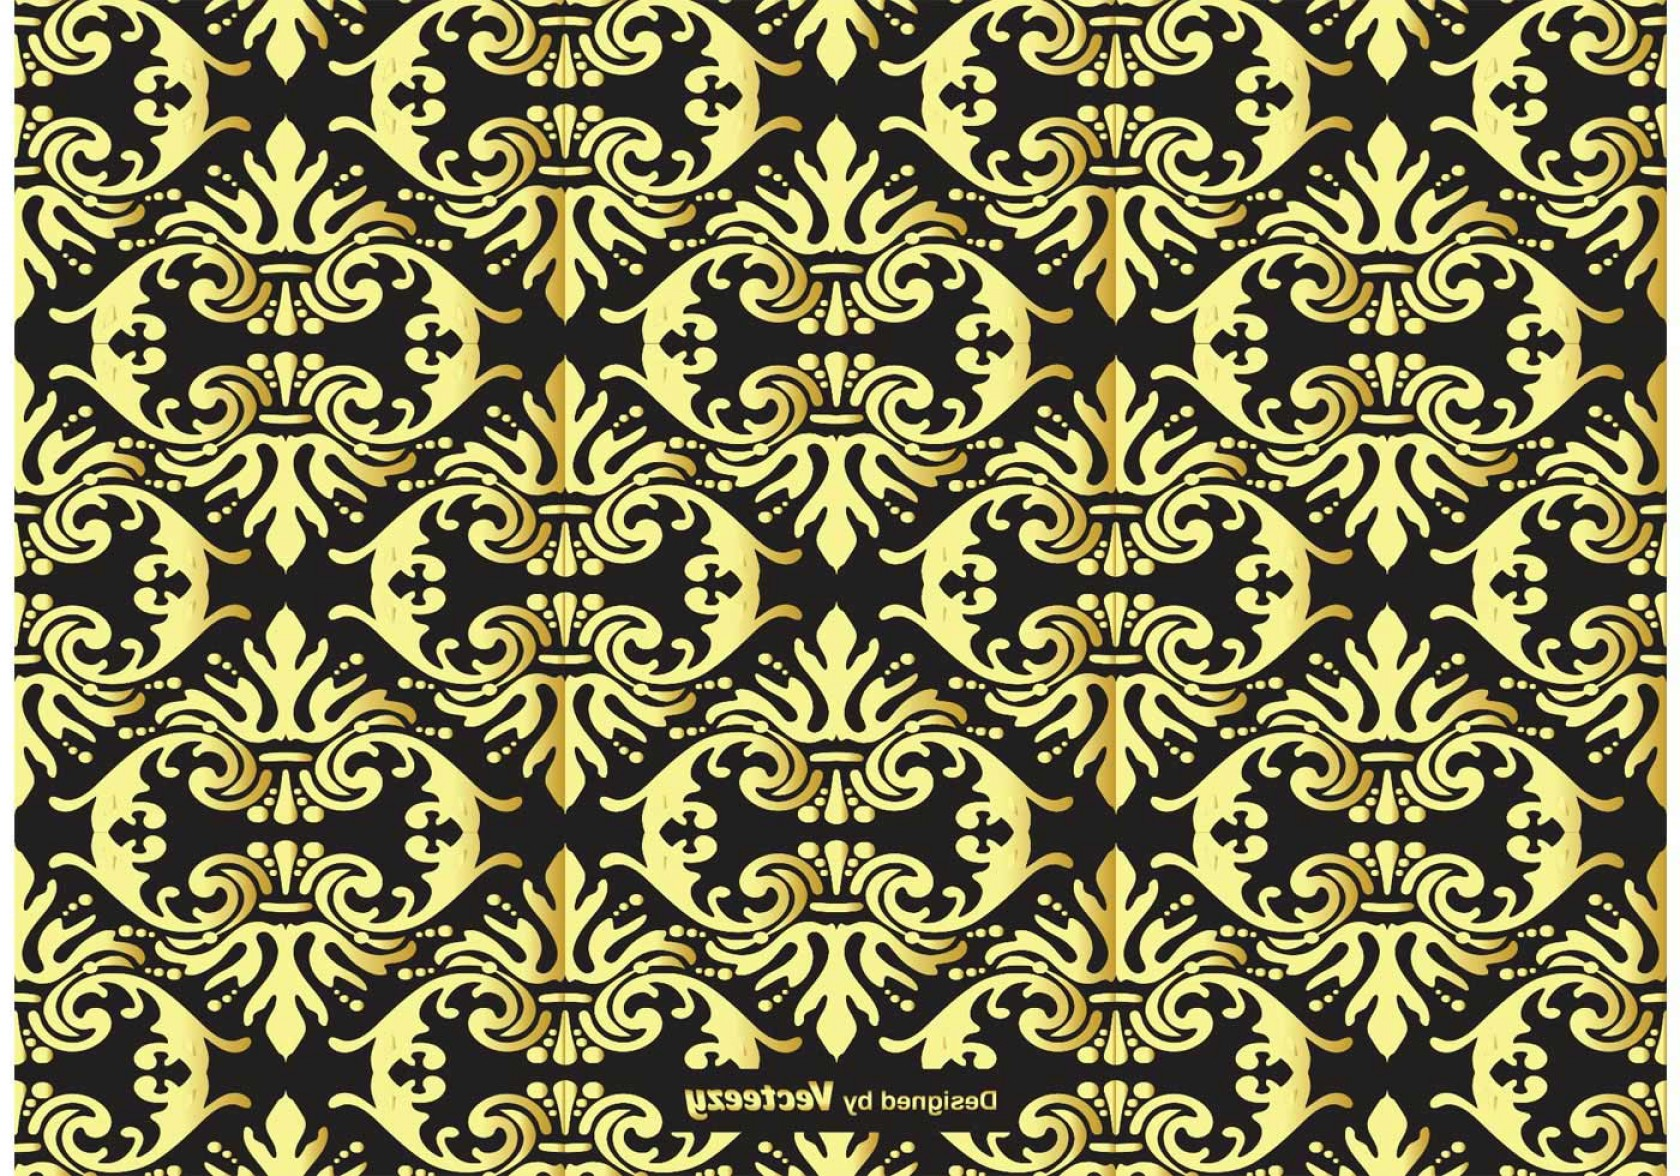 Damask Background Vector Art: Gold And Black Damask Background